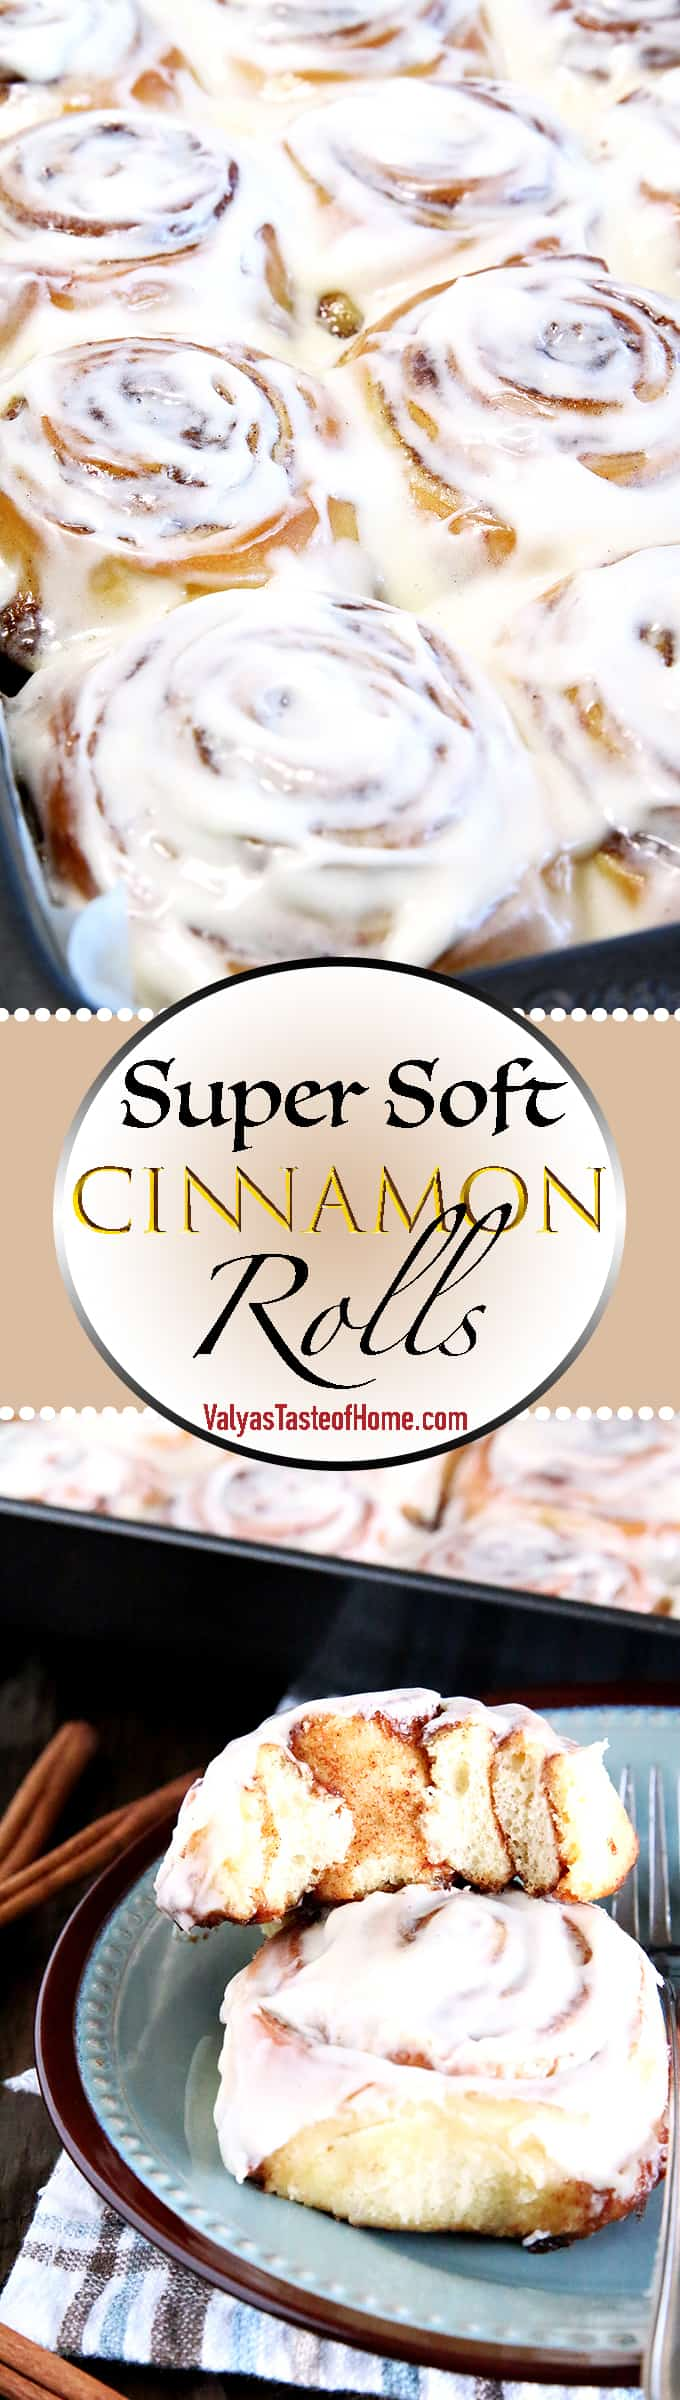 These Super Soft Cinnamon Rolls are incredibly fluffy, moist, and absolutely irresistible. We've been making them for many years now and it's proven to be a no-fail go-to recipe that is loved by everyone. Hands down the best cinnamon roll recipe out there!